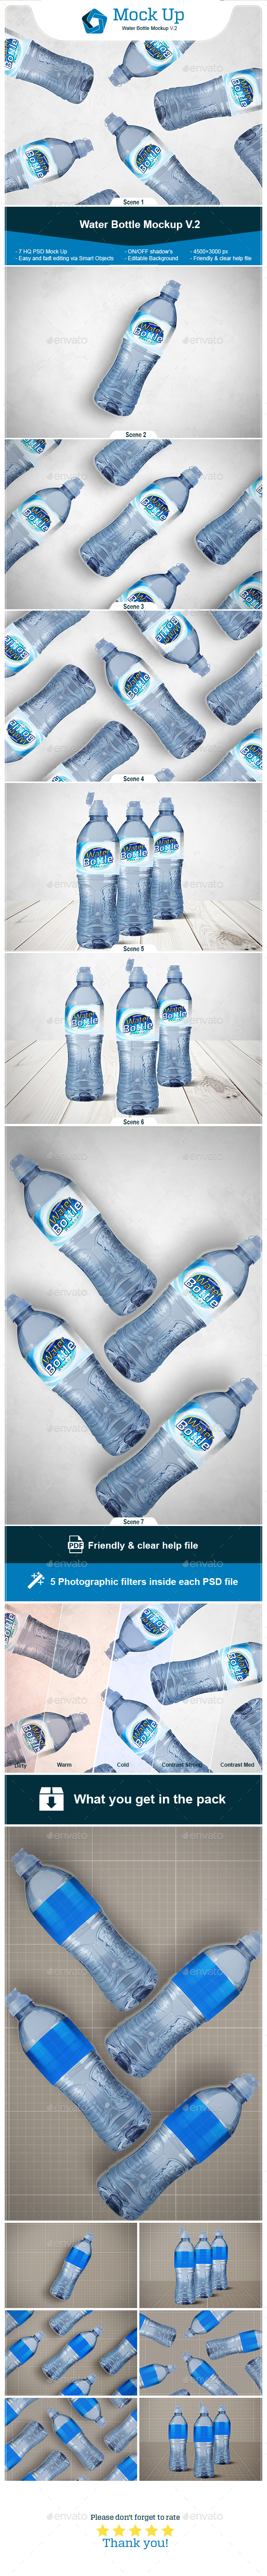 Water Bottle Mockup V.2 - Miscellaneous Print